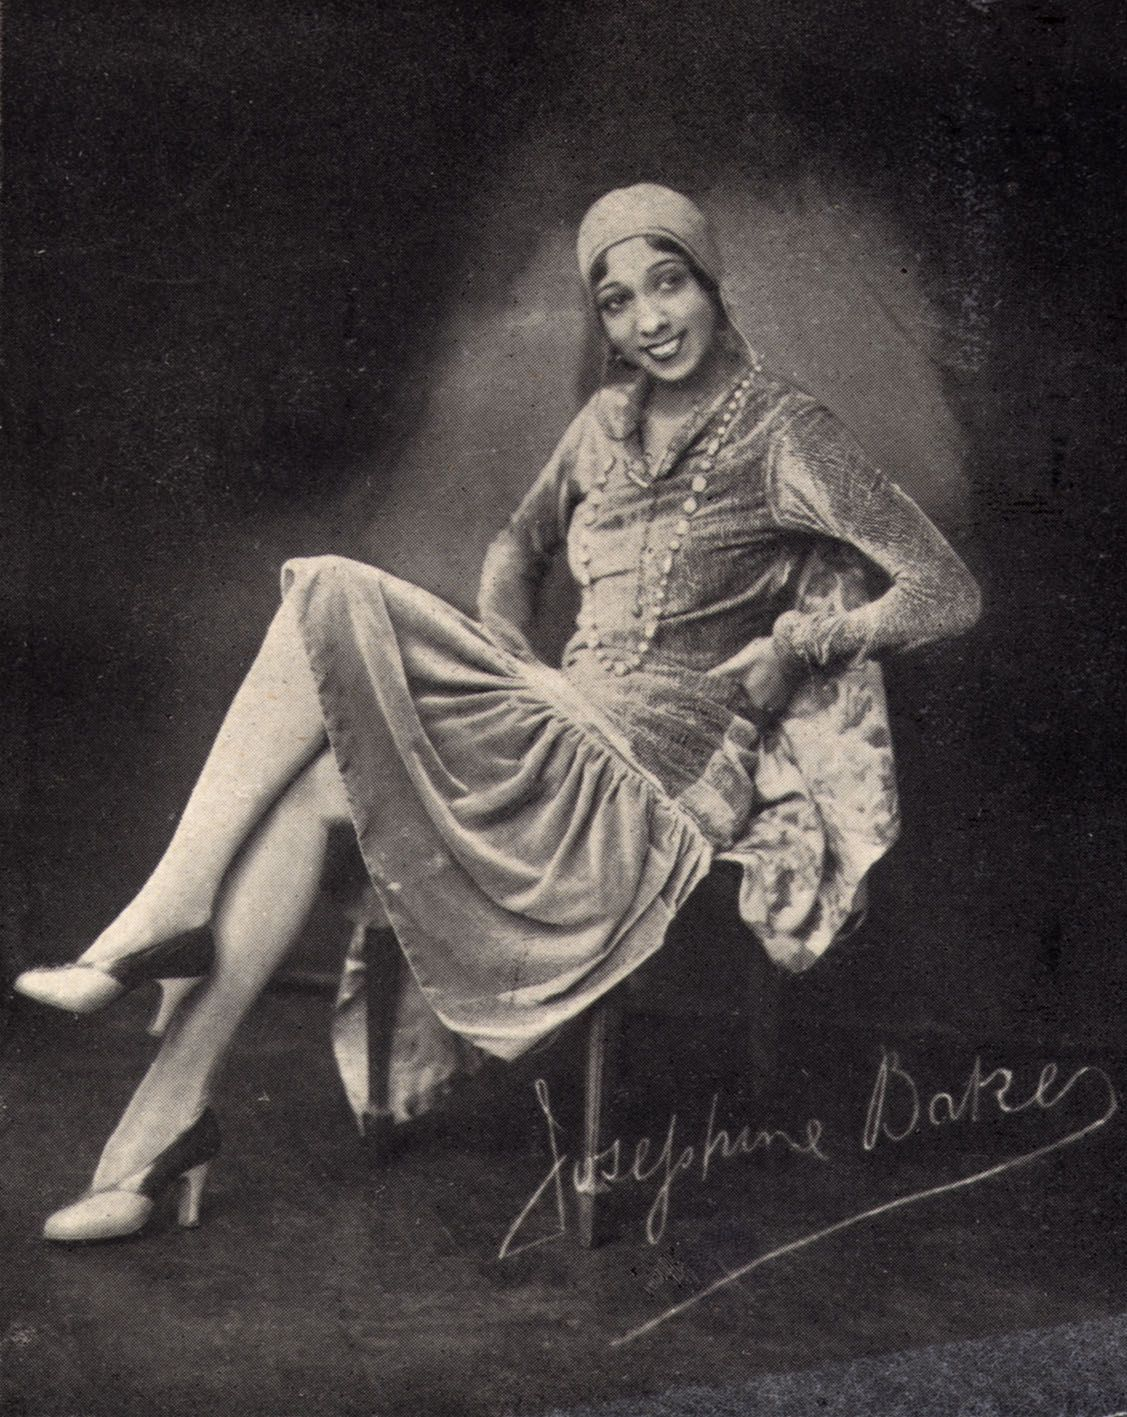 josephine baker 1926 banana skirtjosephine baker paris, josephine baker dance, josephine baker movie, josephine baker piscine, josephine baker wikipedia english, josephine baker background, josephine baker 1926 banana skirt, josephine baker fr, josephine baker speech, josephine baker salle de sport, josephine baker j'ai deux amours, josephine baker at tivoli, josephine baker wiki, josephine baker jazz, josephine baker i, josephine baker biography, josephine baker natal chart, josephine baker j'ai deux amours lyrics, josephine baker blues, josephine baker discogs